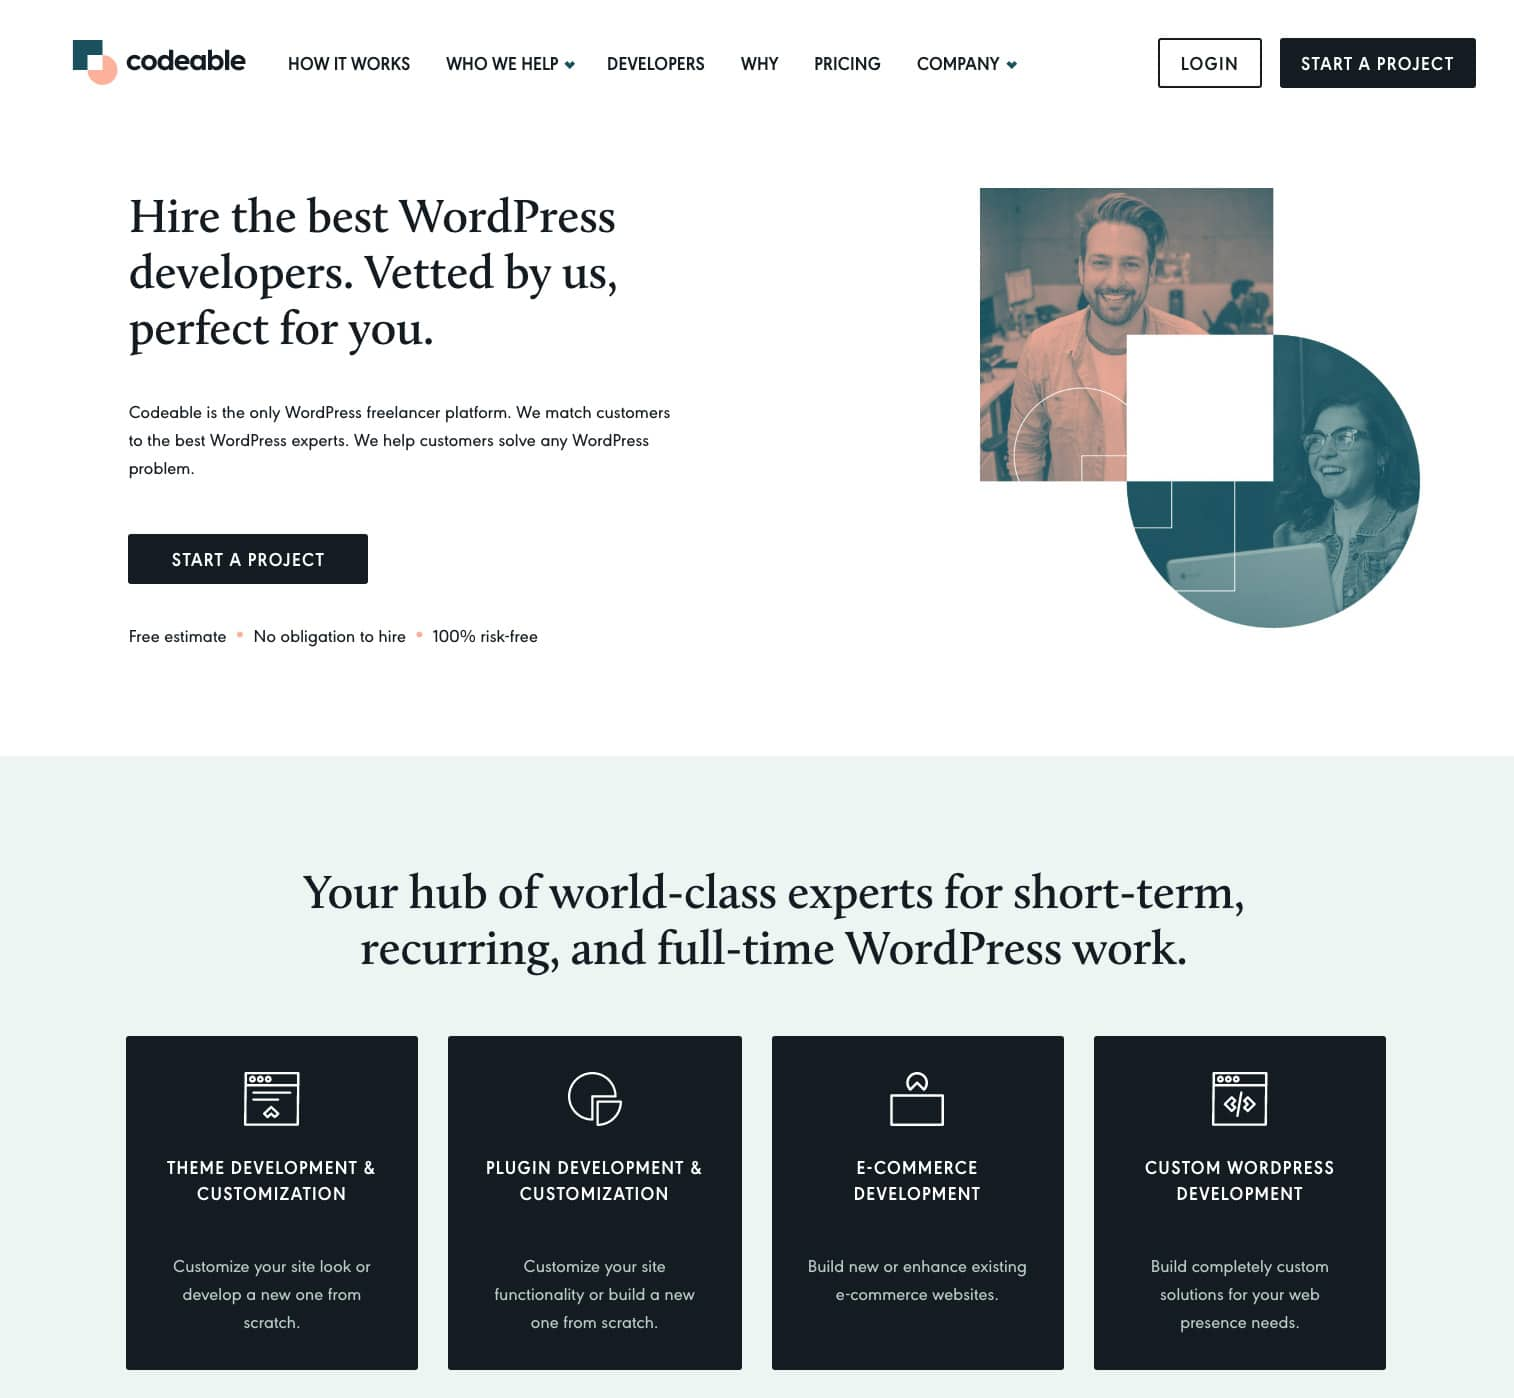 Codeable - Outsourcing service to find WordPress experts